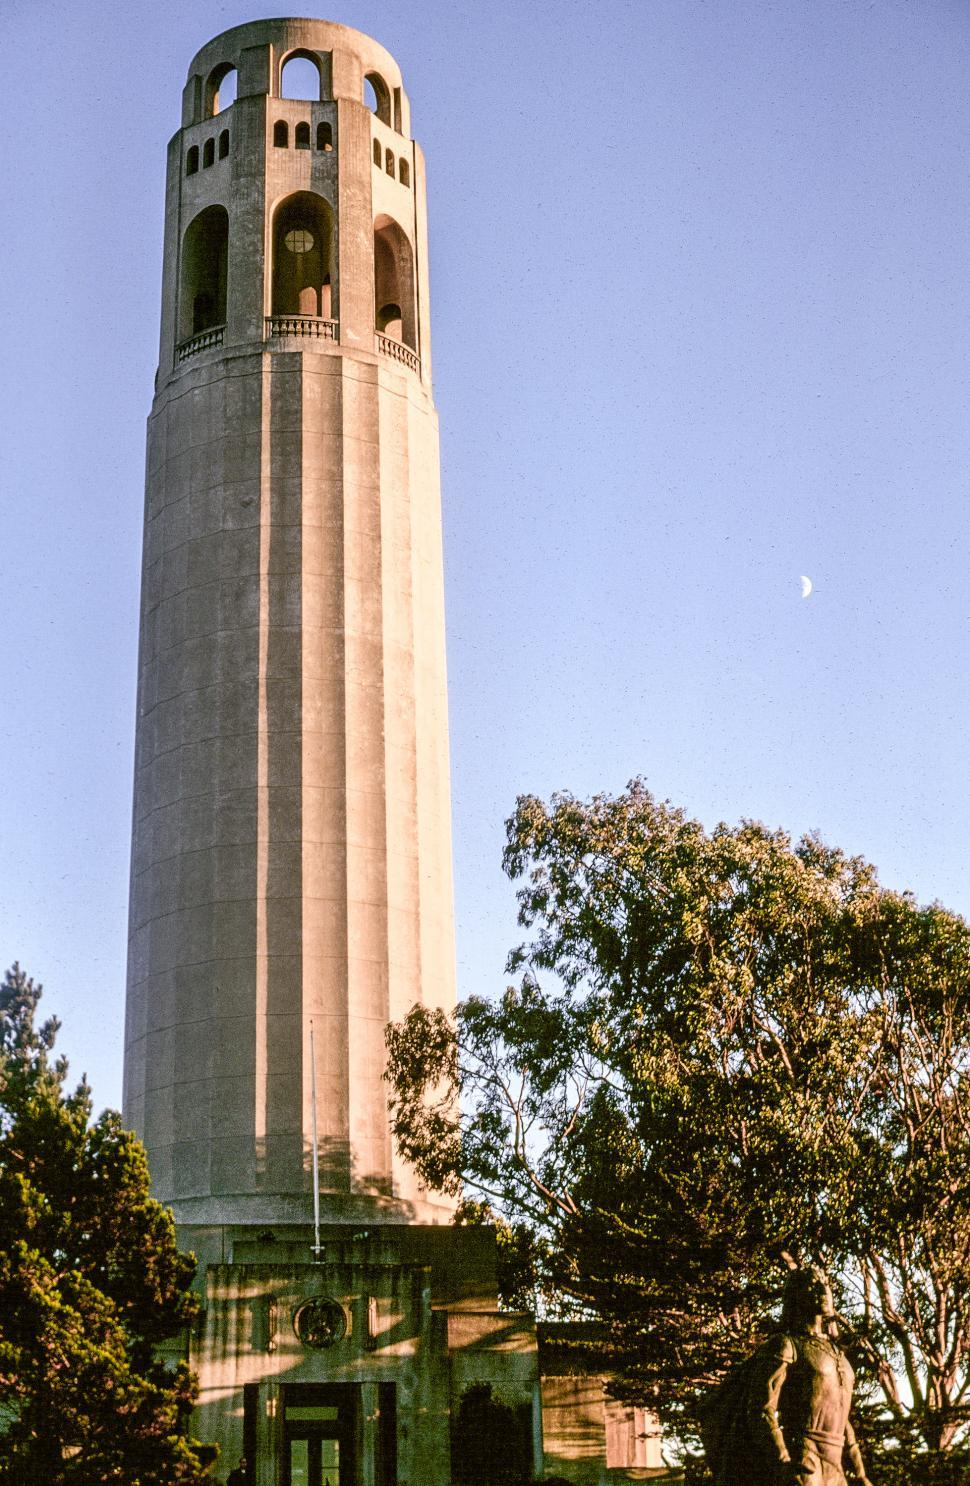 Download Free Stock Photo of Coit Tower with statue of Columbus